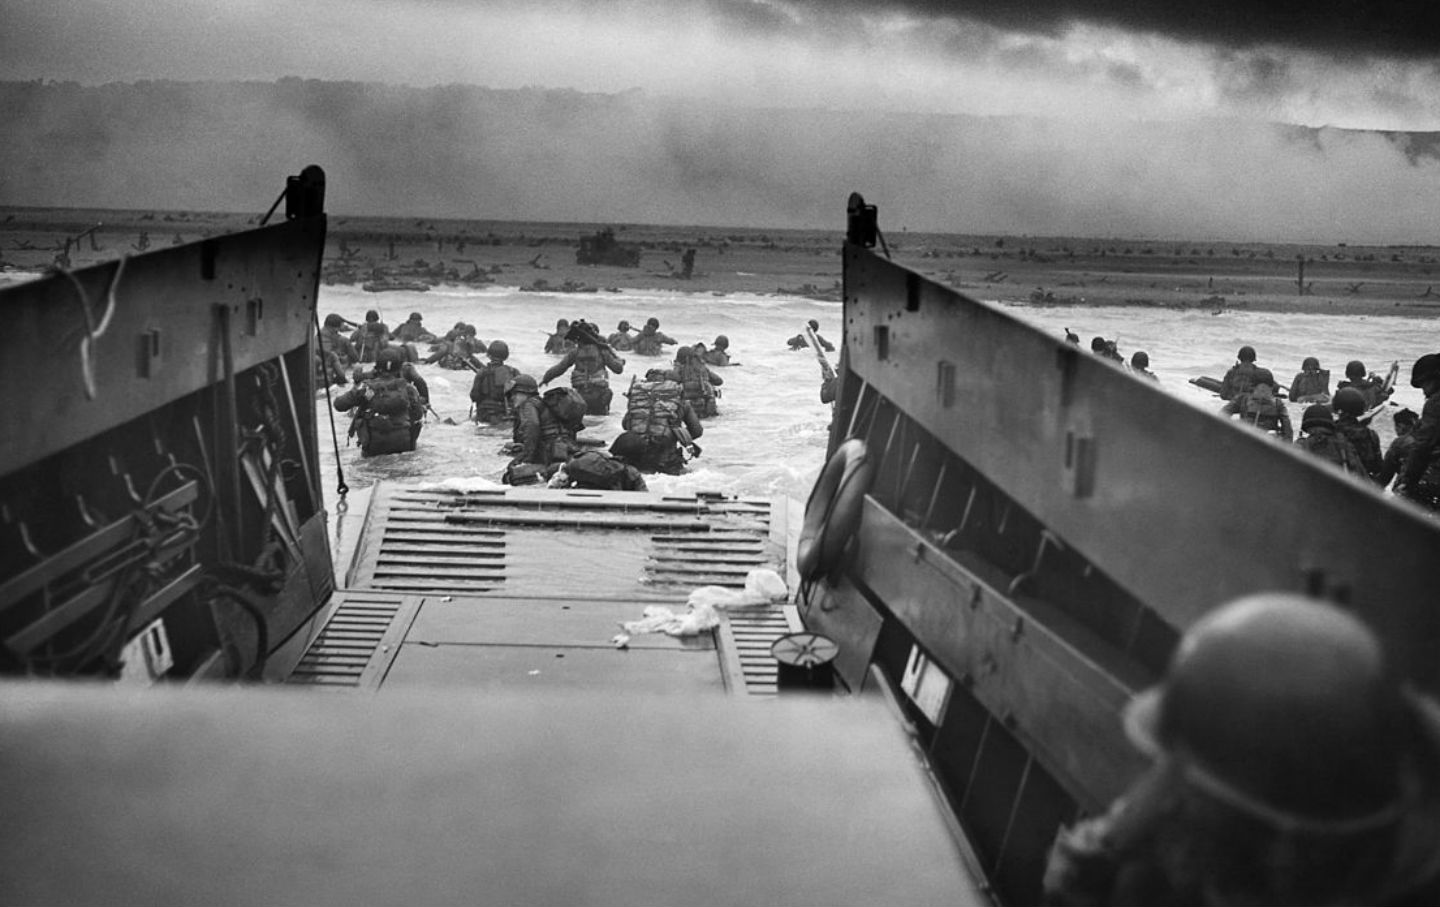 D Day Invasion June 6, 1944: D-Day In...